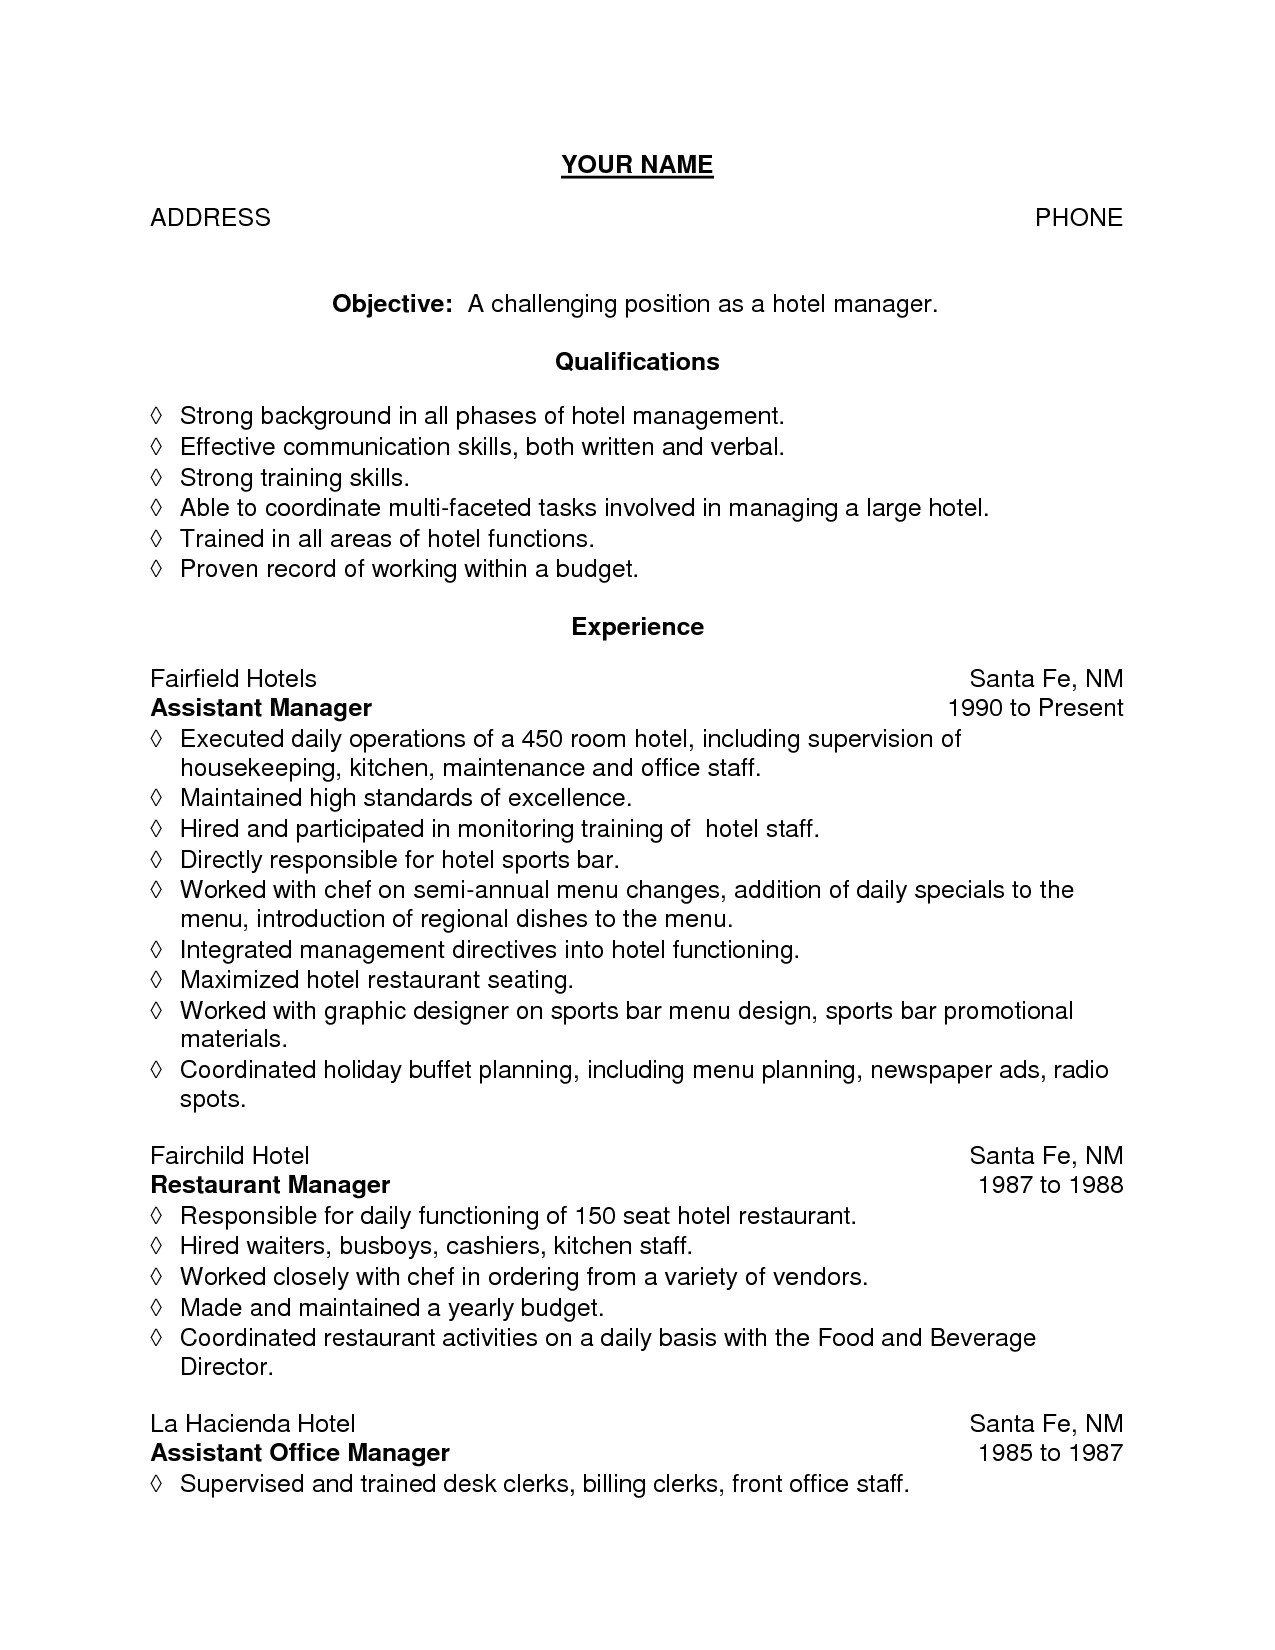 sample resume for housekeeping job in hotel